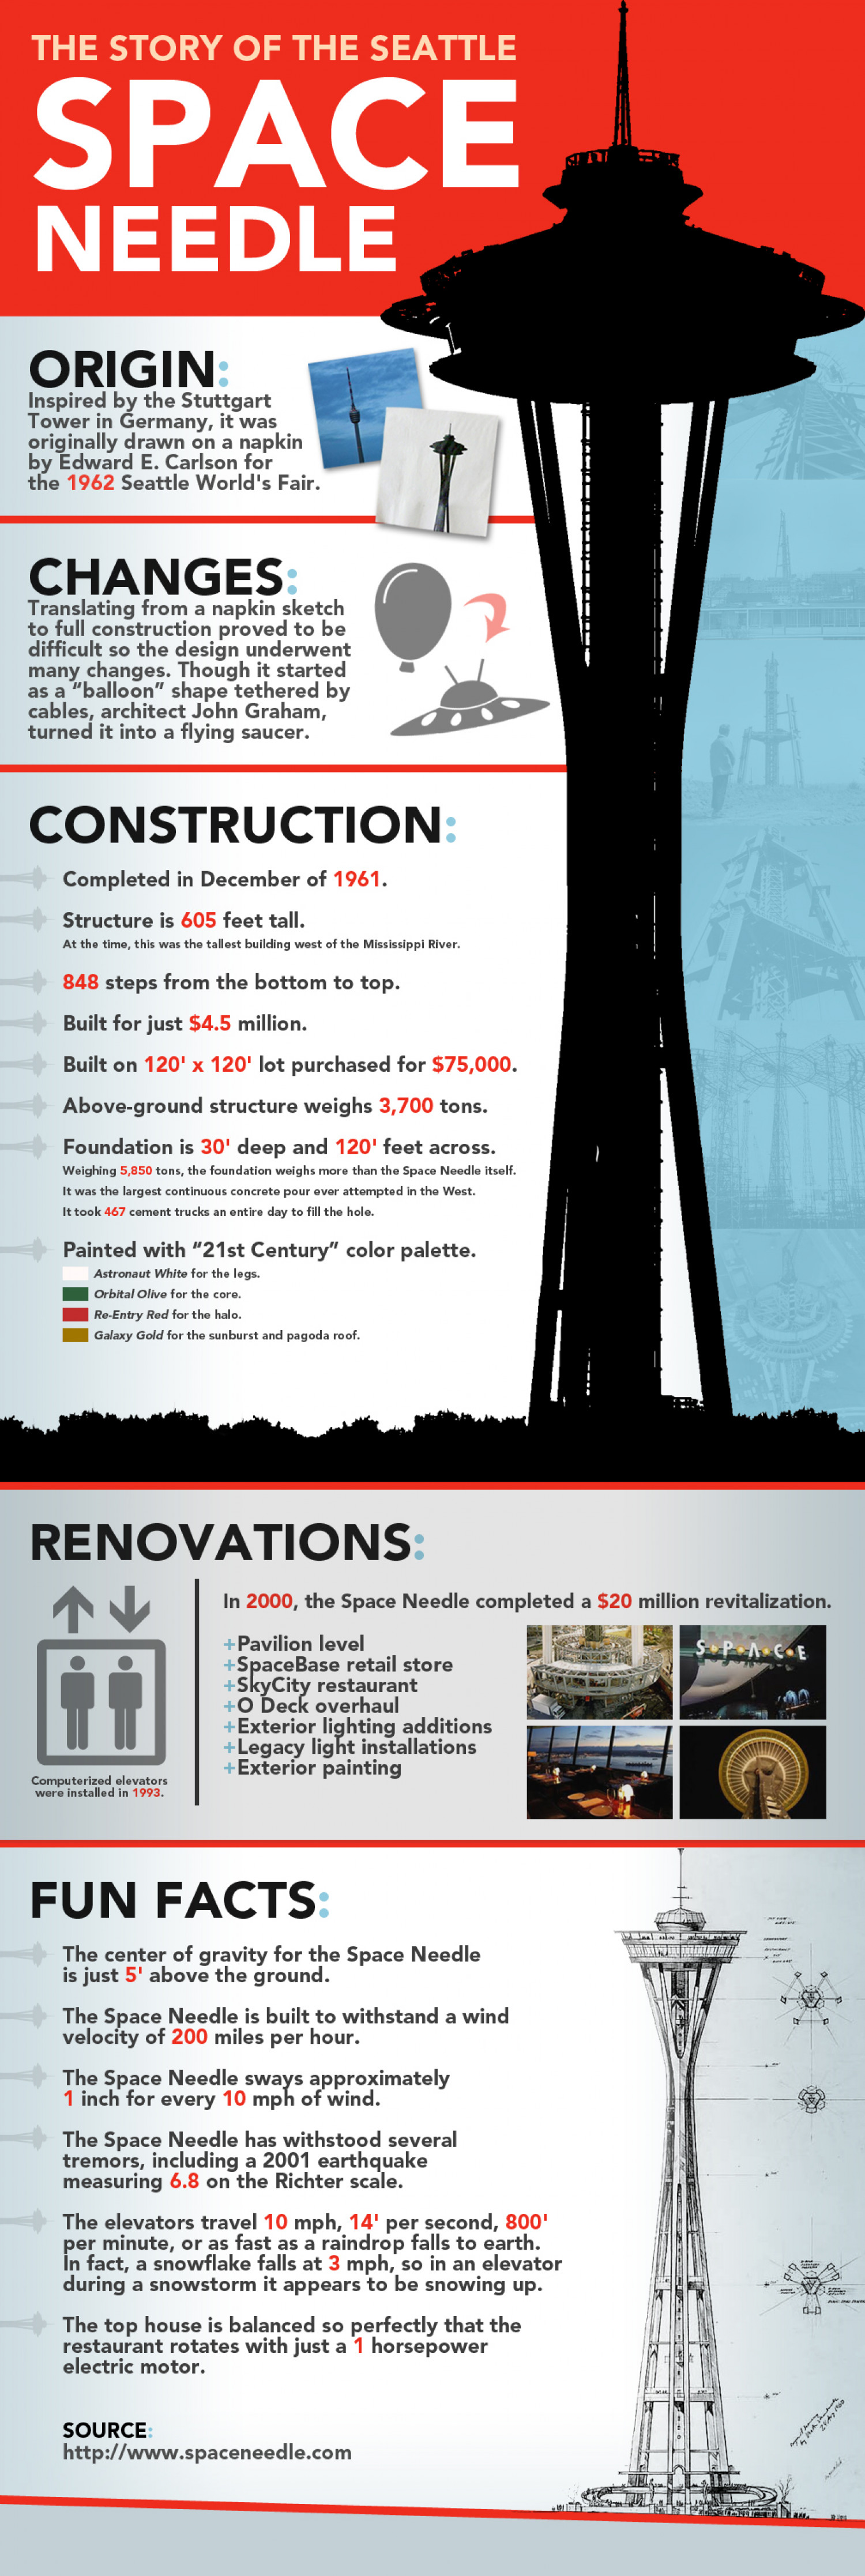 The Story of the Seattle Space Needle Infographic